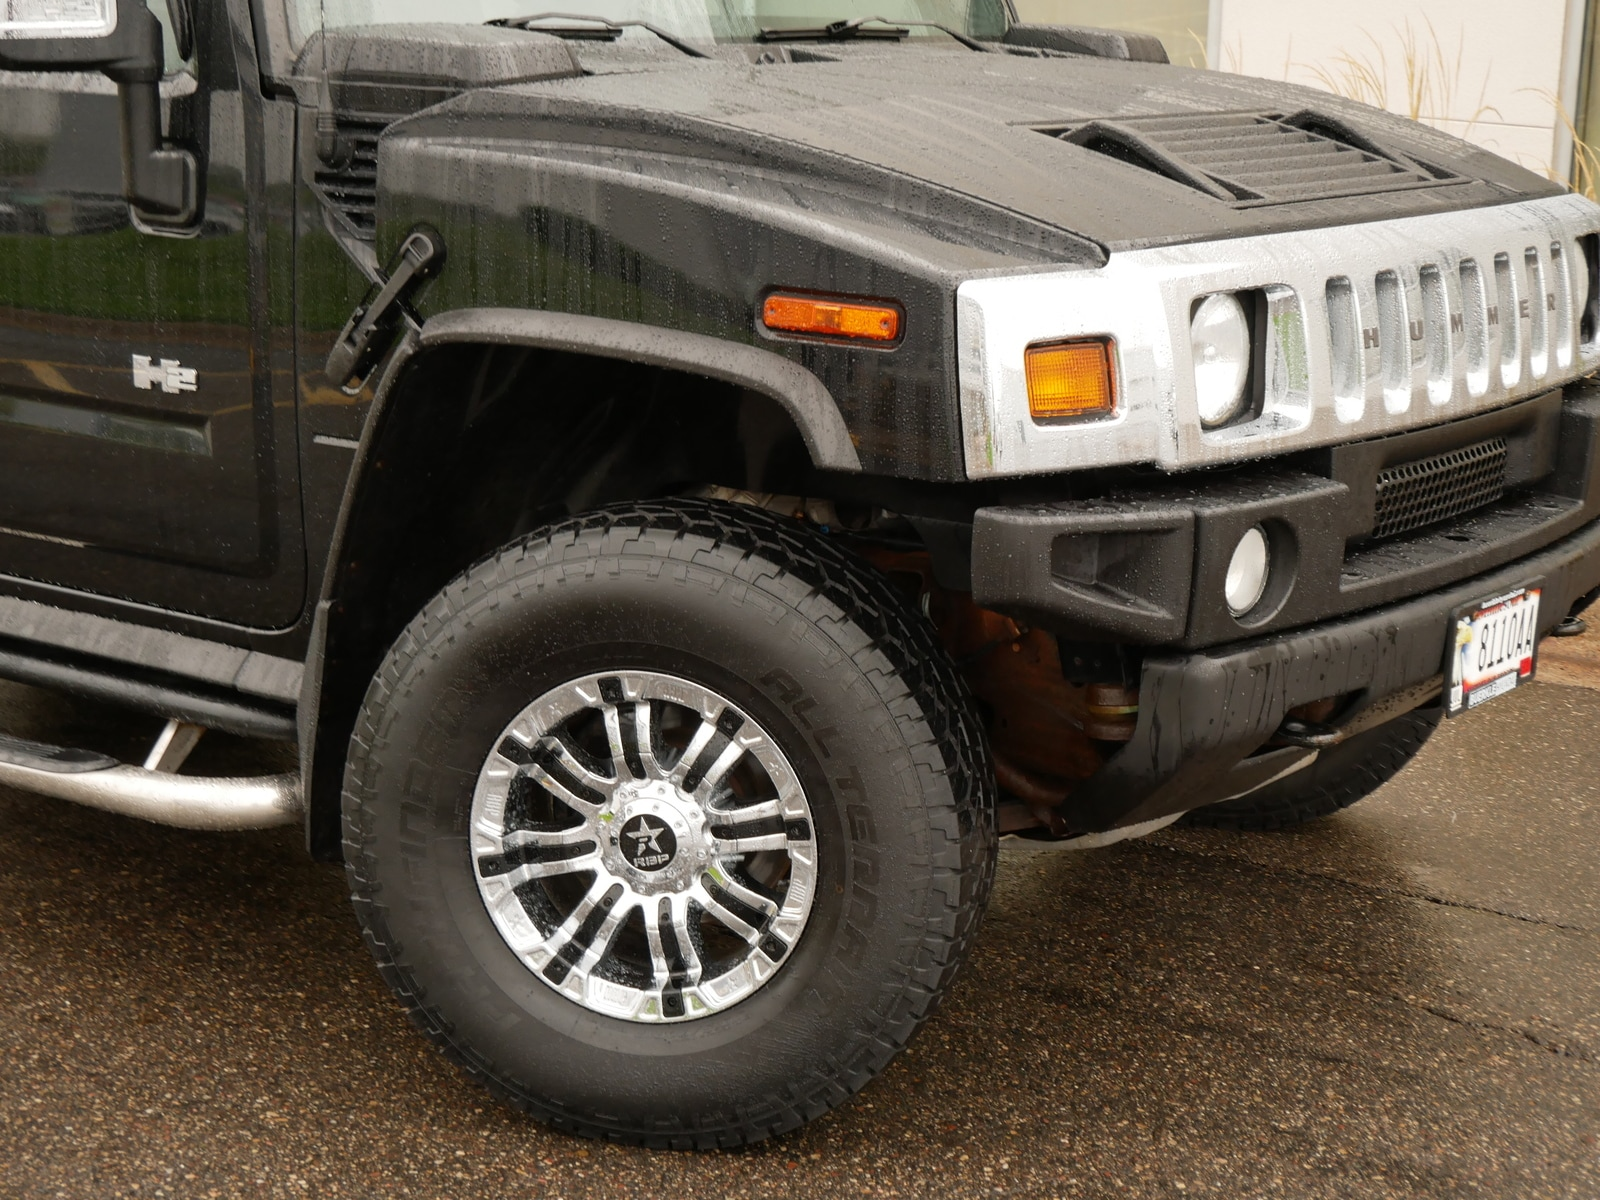 Used 2005 Hummer H2  with VIN 5GRGN23U15H121797 for sale in Saint Paul, Minnesota